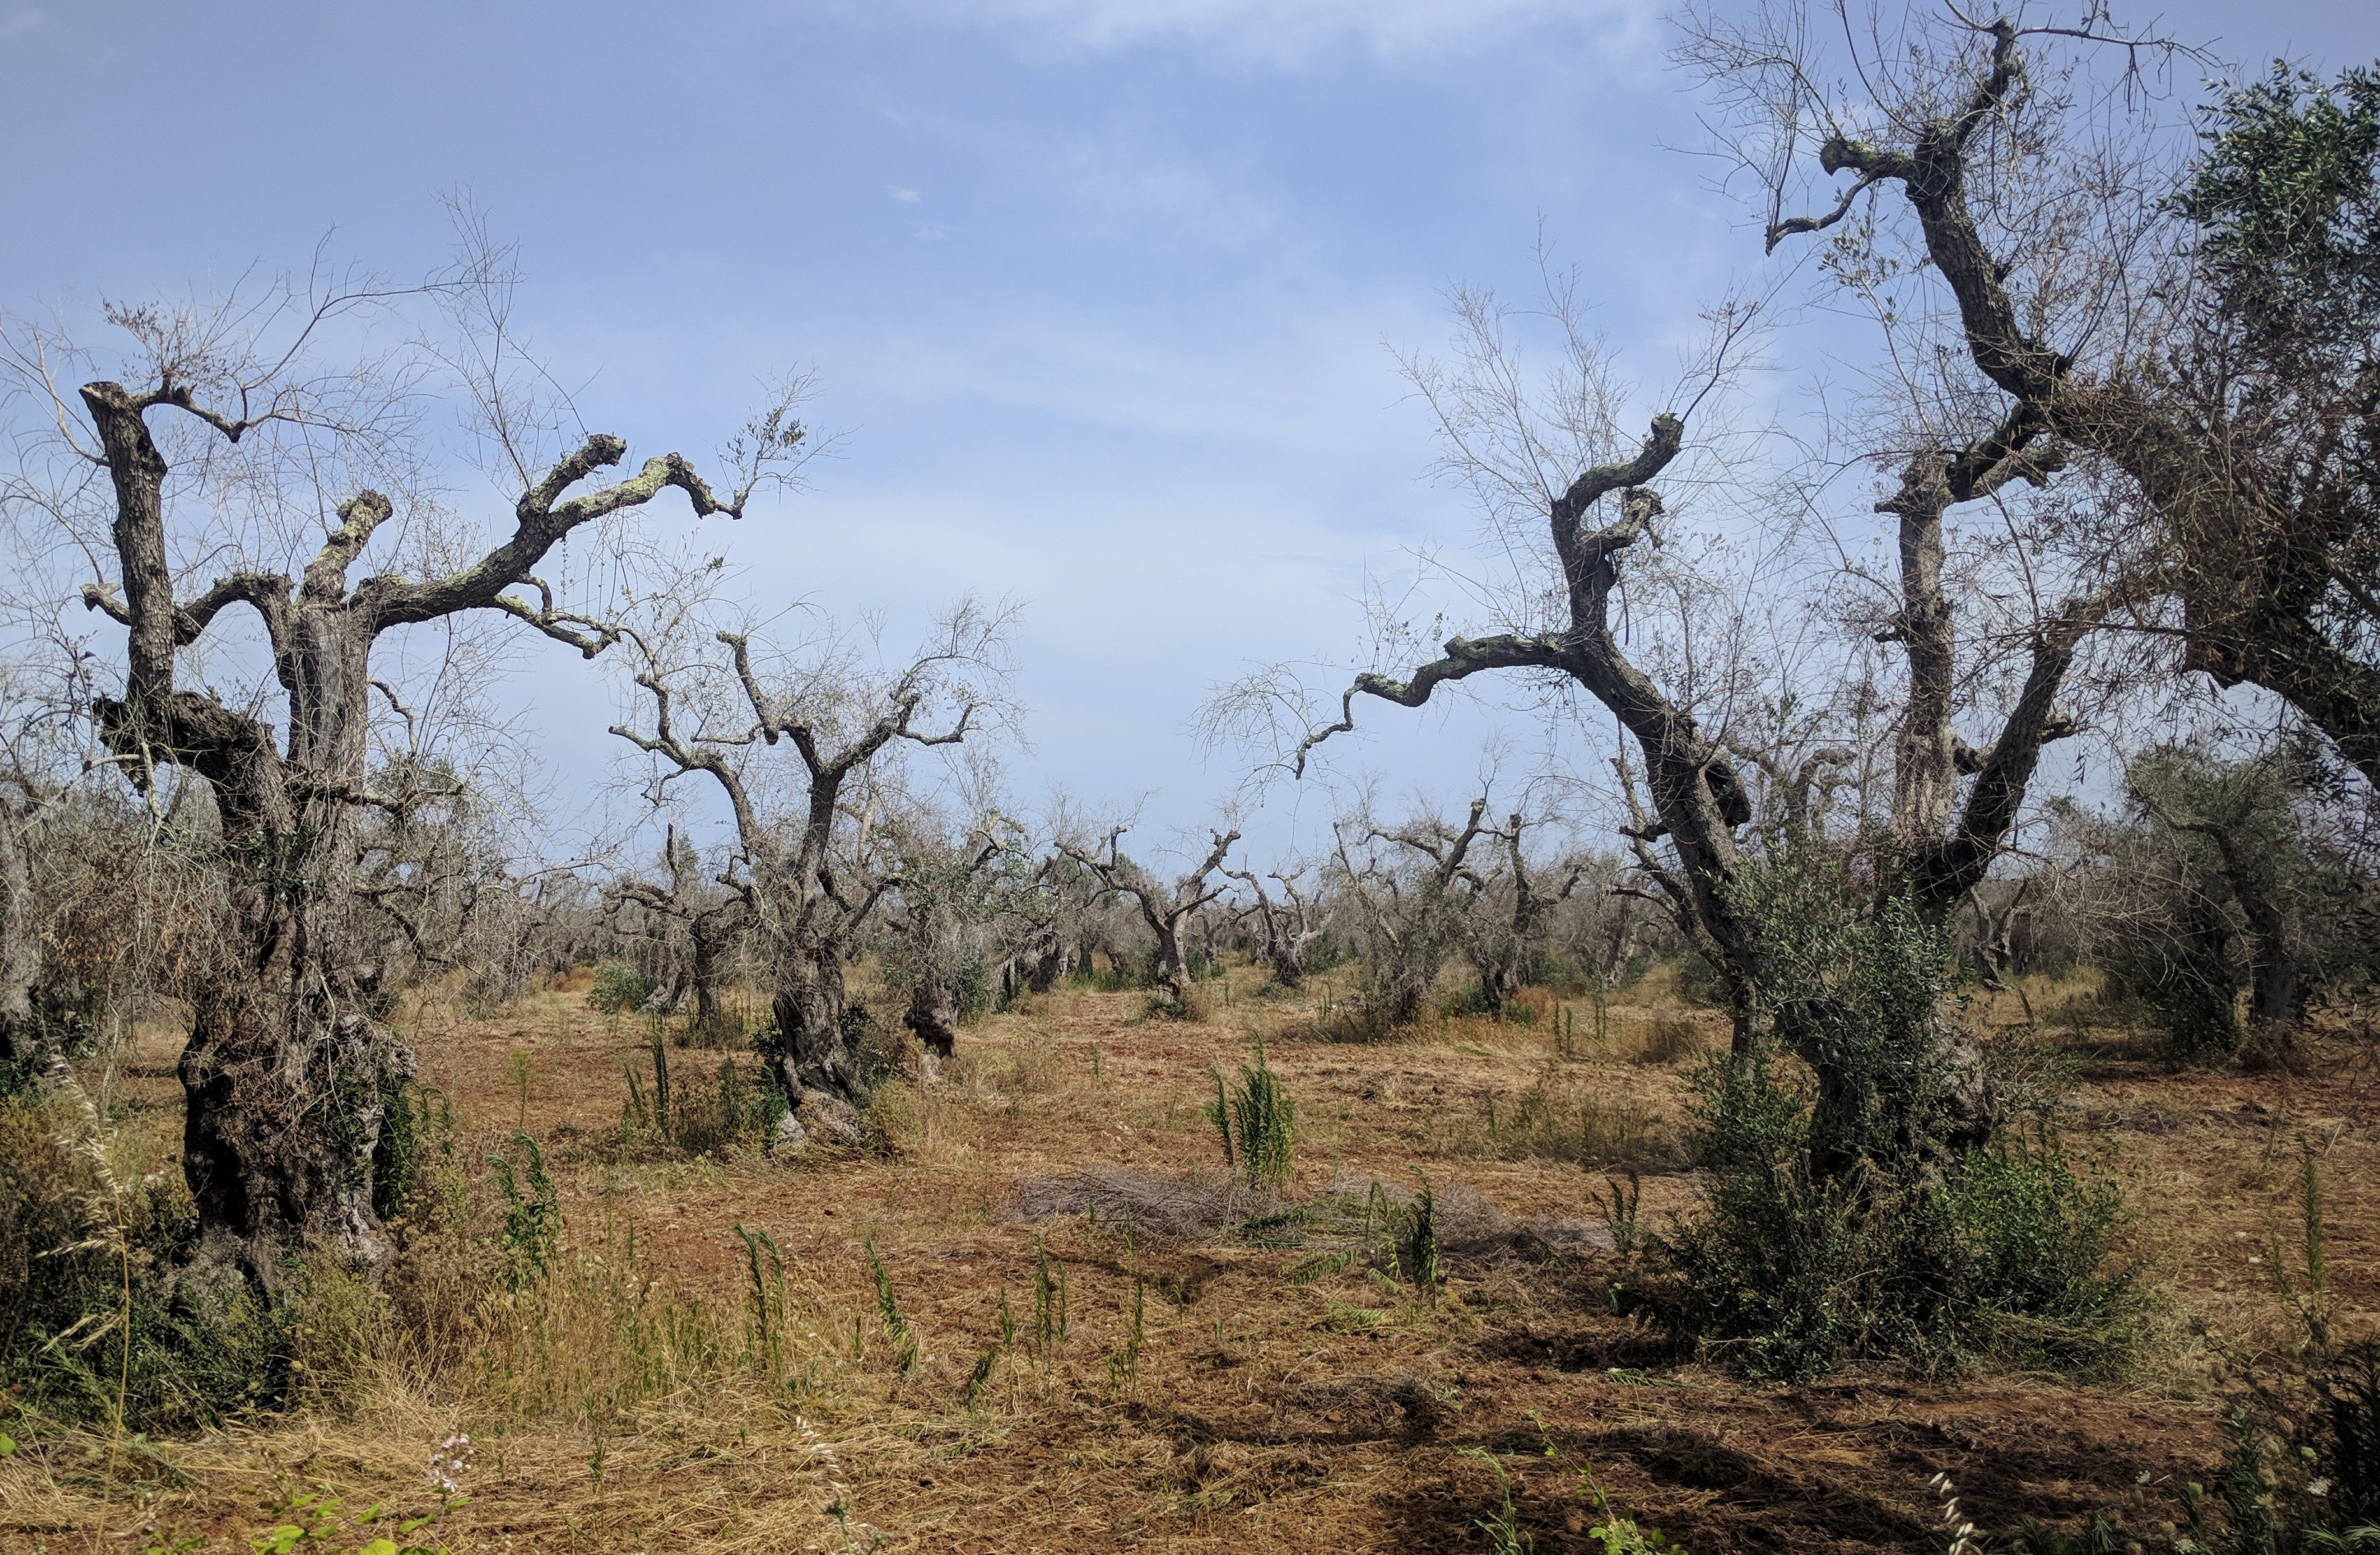 Xylella fastidiosa: an insight on this great problem